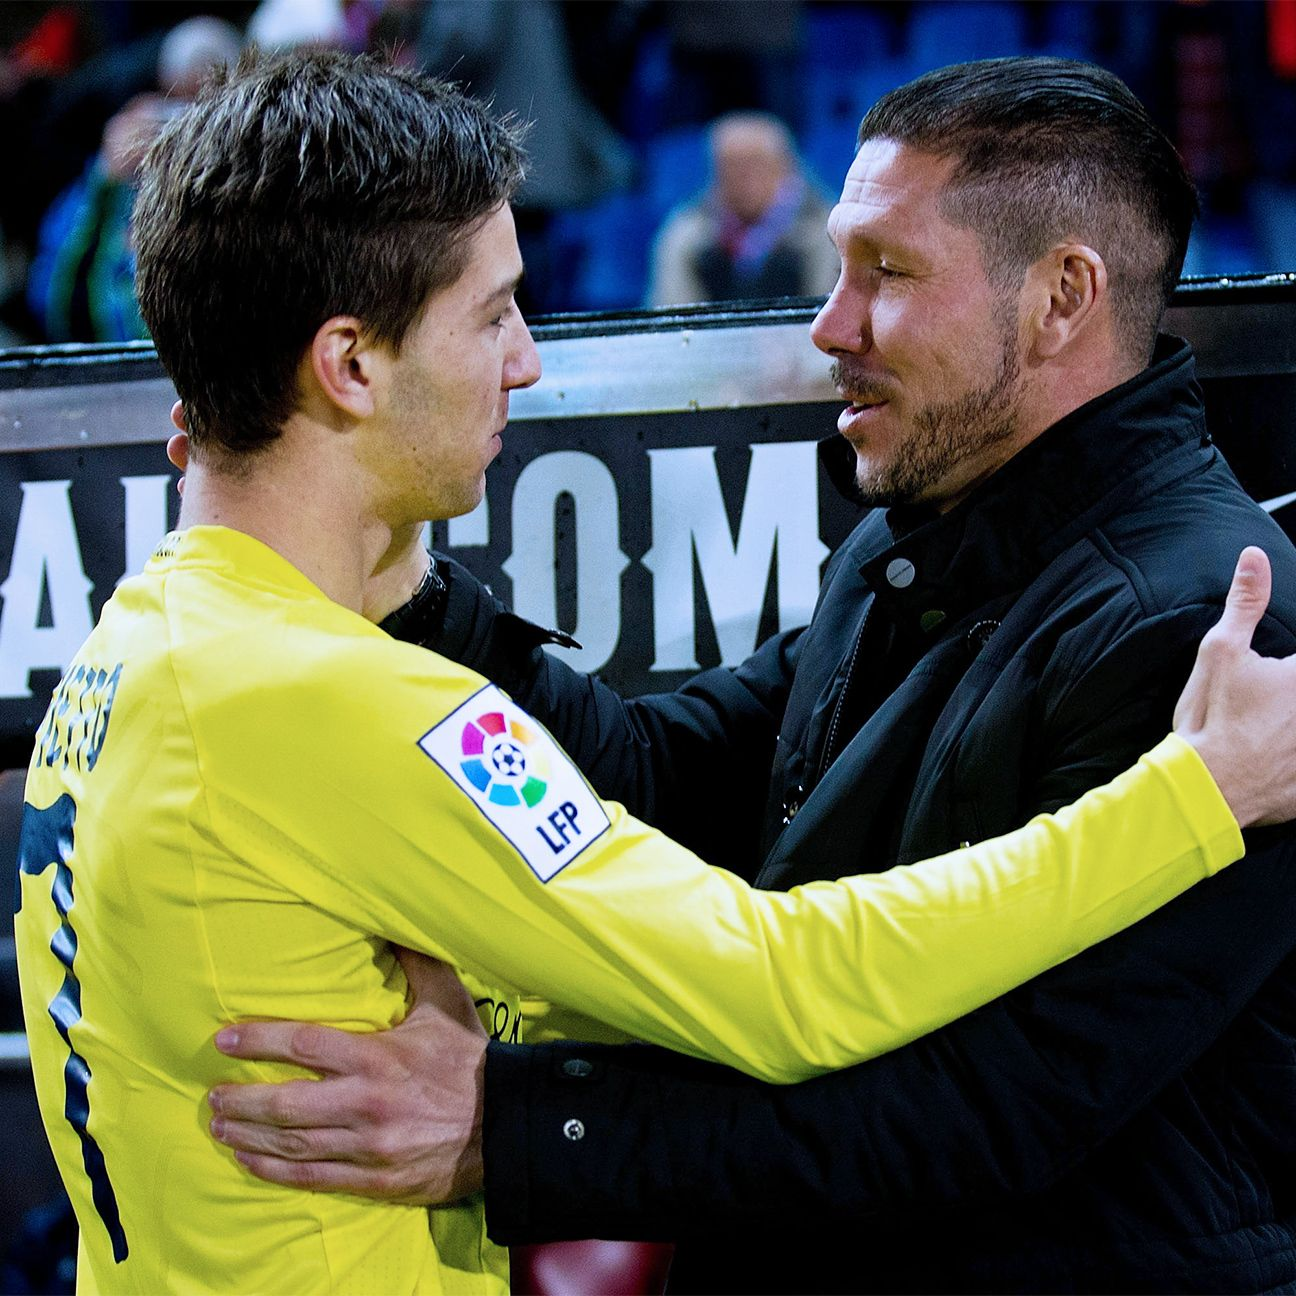 After starting his career under Diego Simeone at Argentine club Racing, Luciano Vietto will reunite with his old coach at Atletico Madrid.